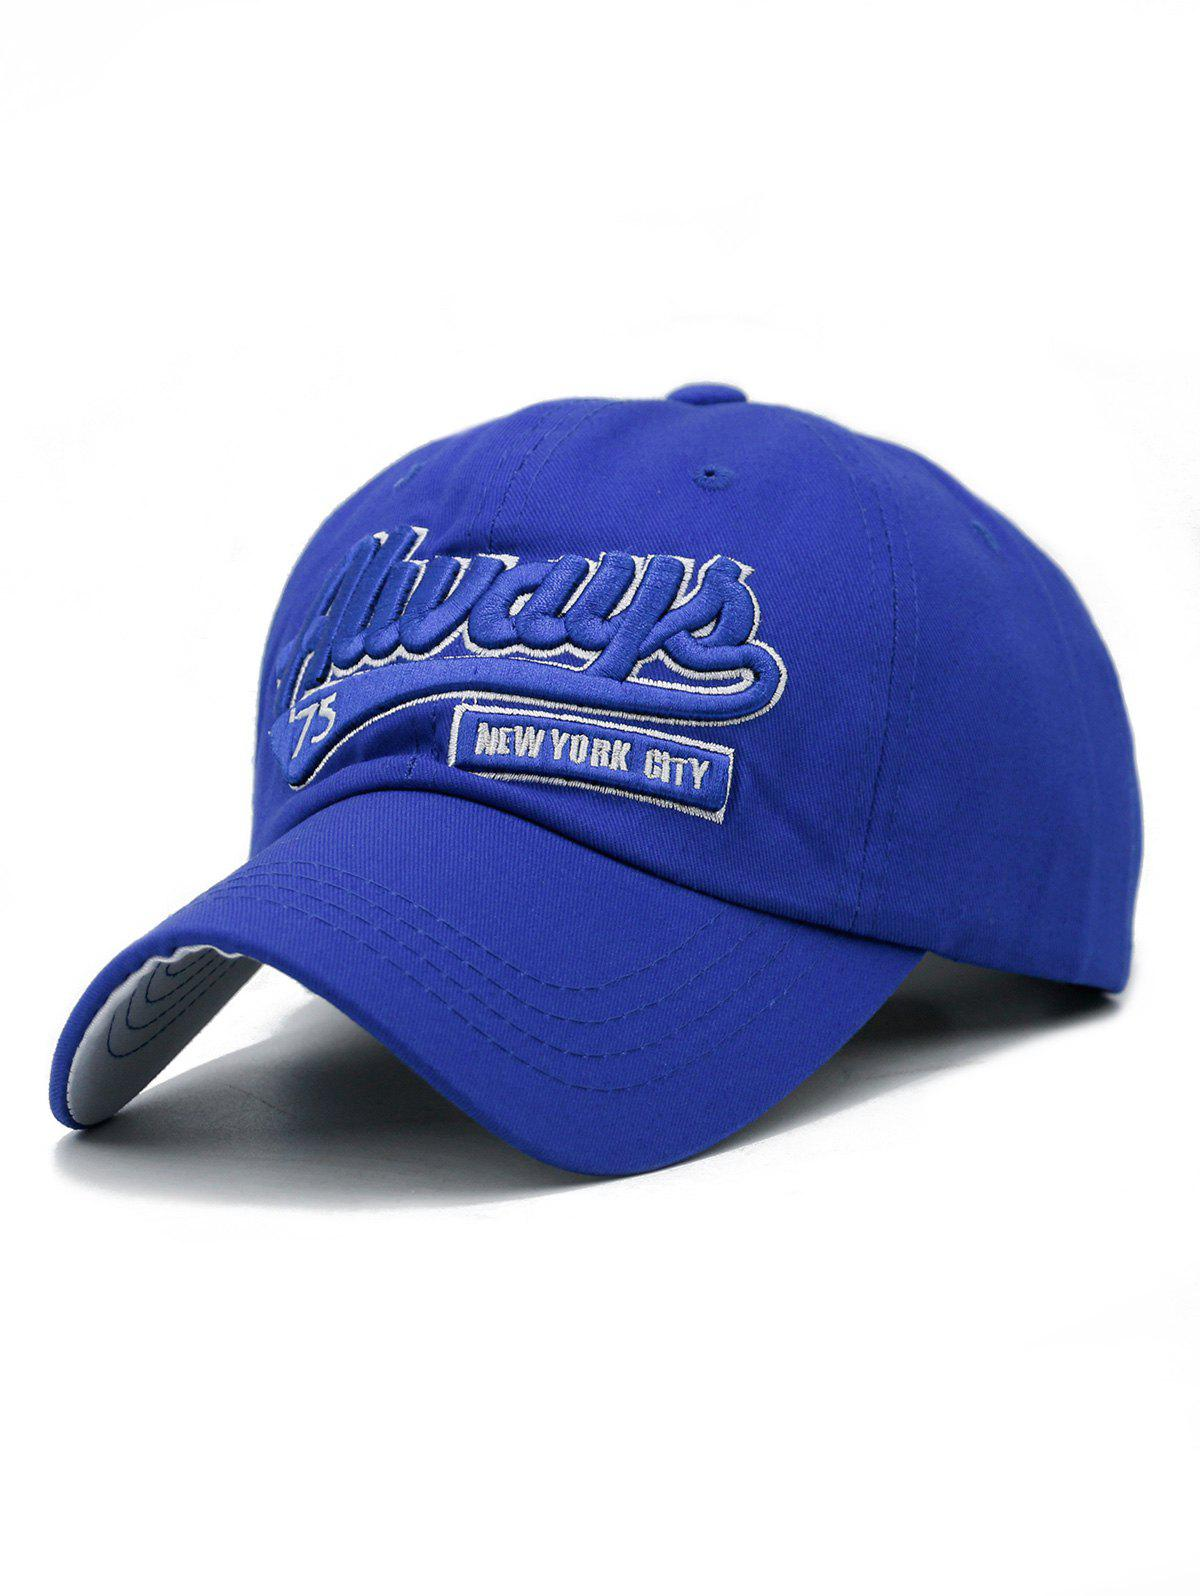 Letter Embroidery Adjustable Trucker Hat - ROYAL BLUE